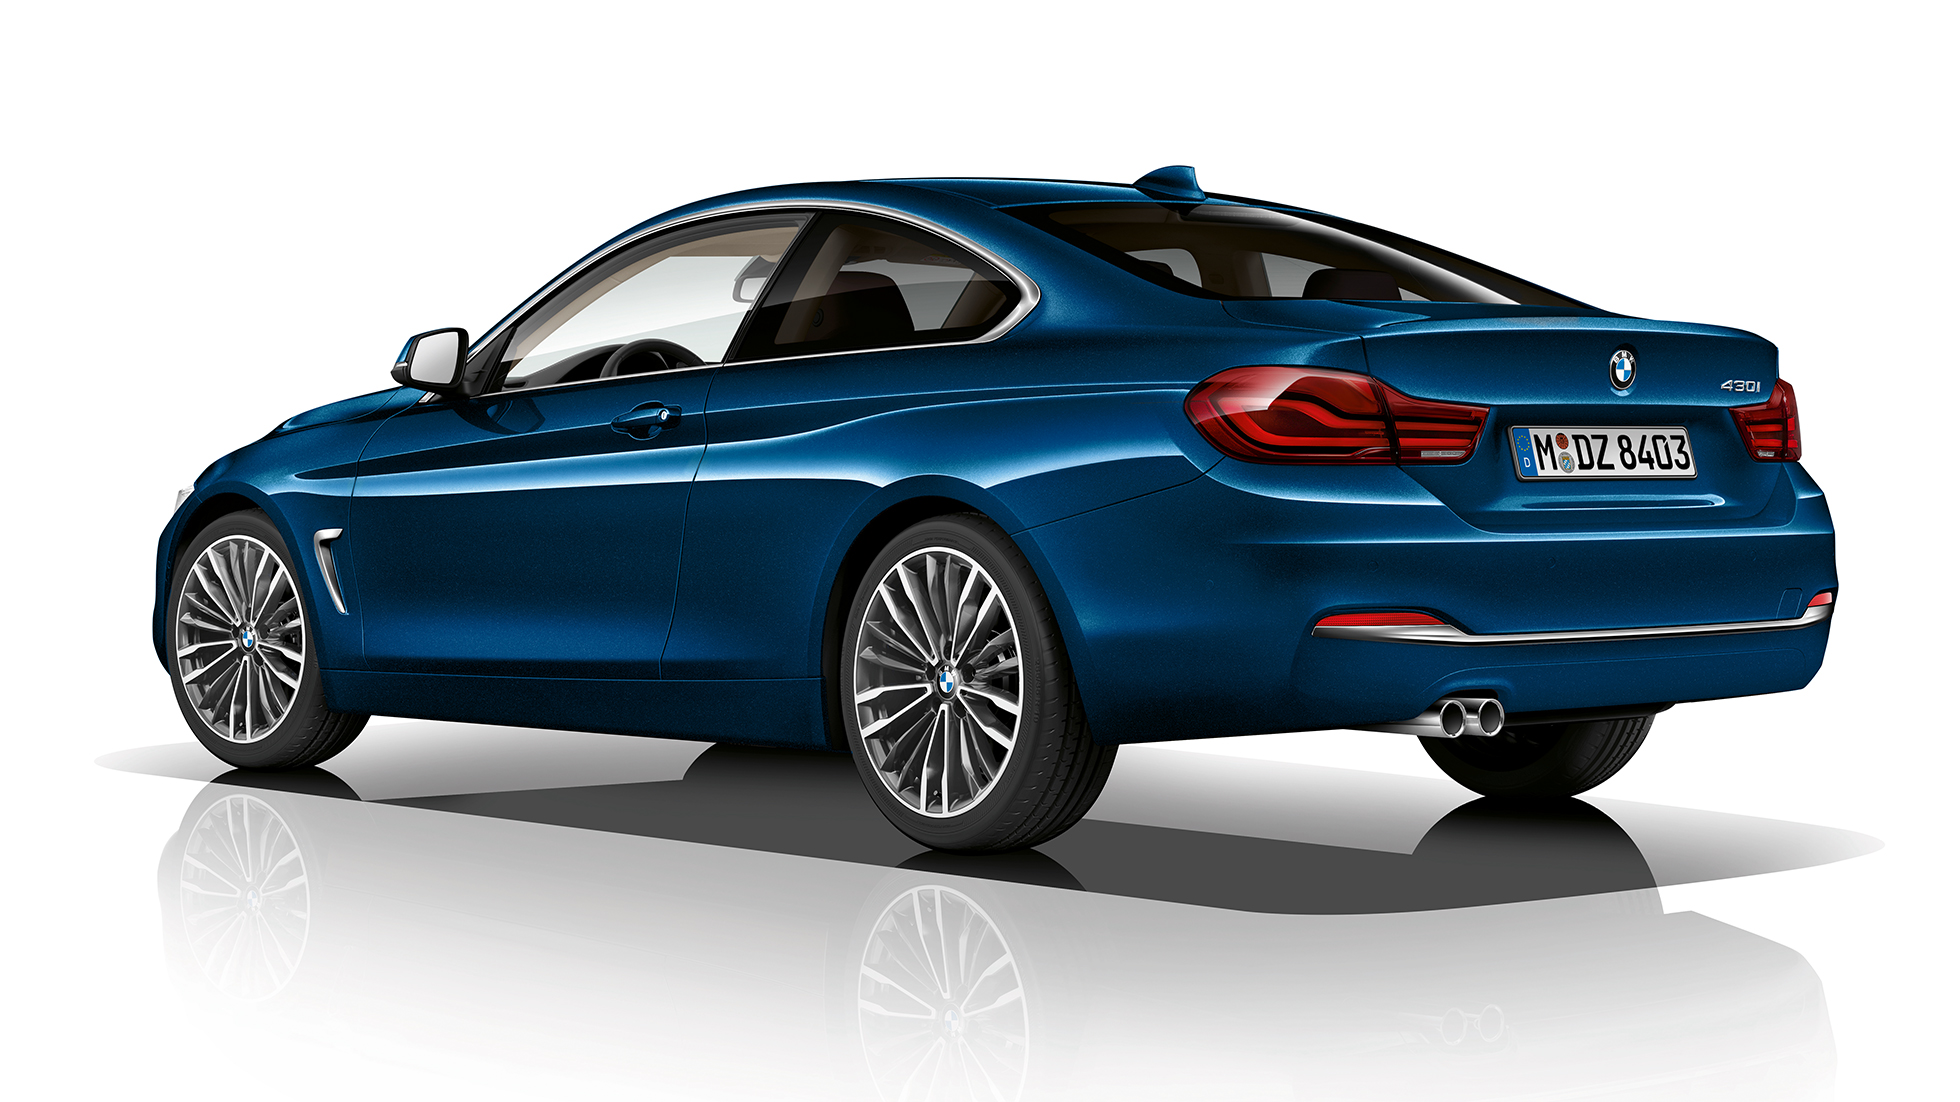 BMW 4-serie Coupé, Model Luxury Line, trekvartbillede bagfra